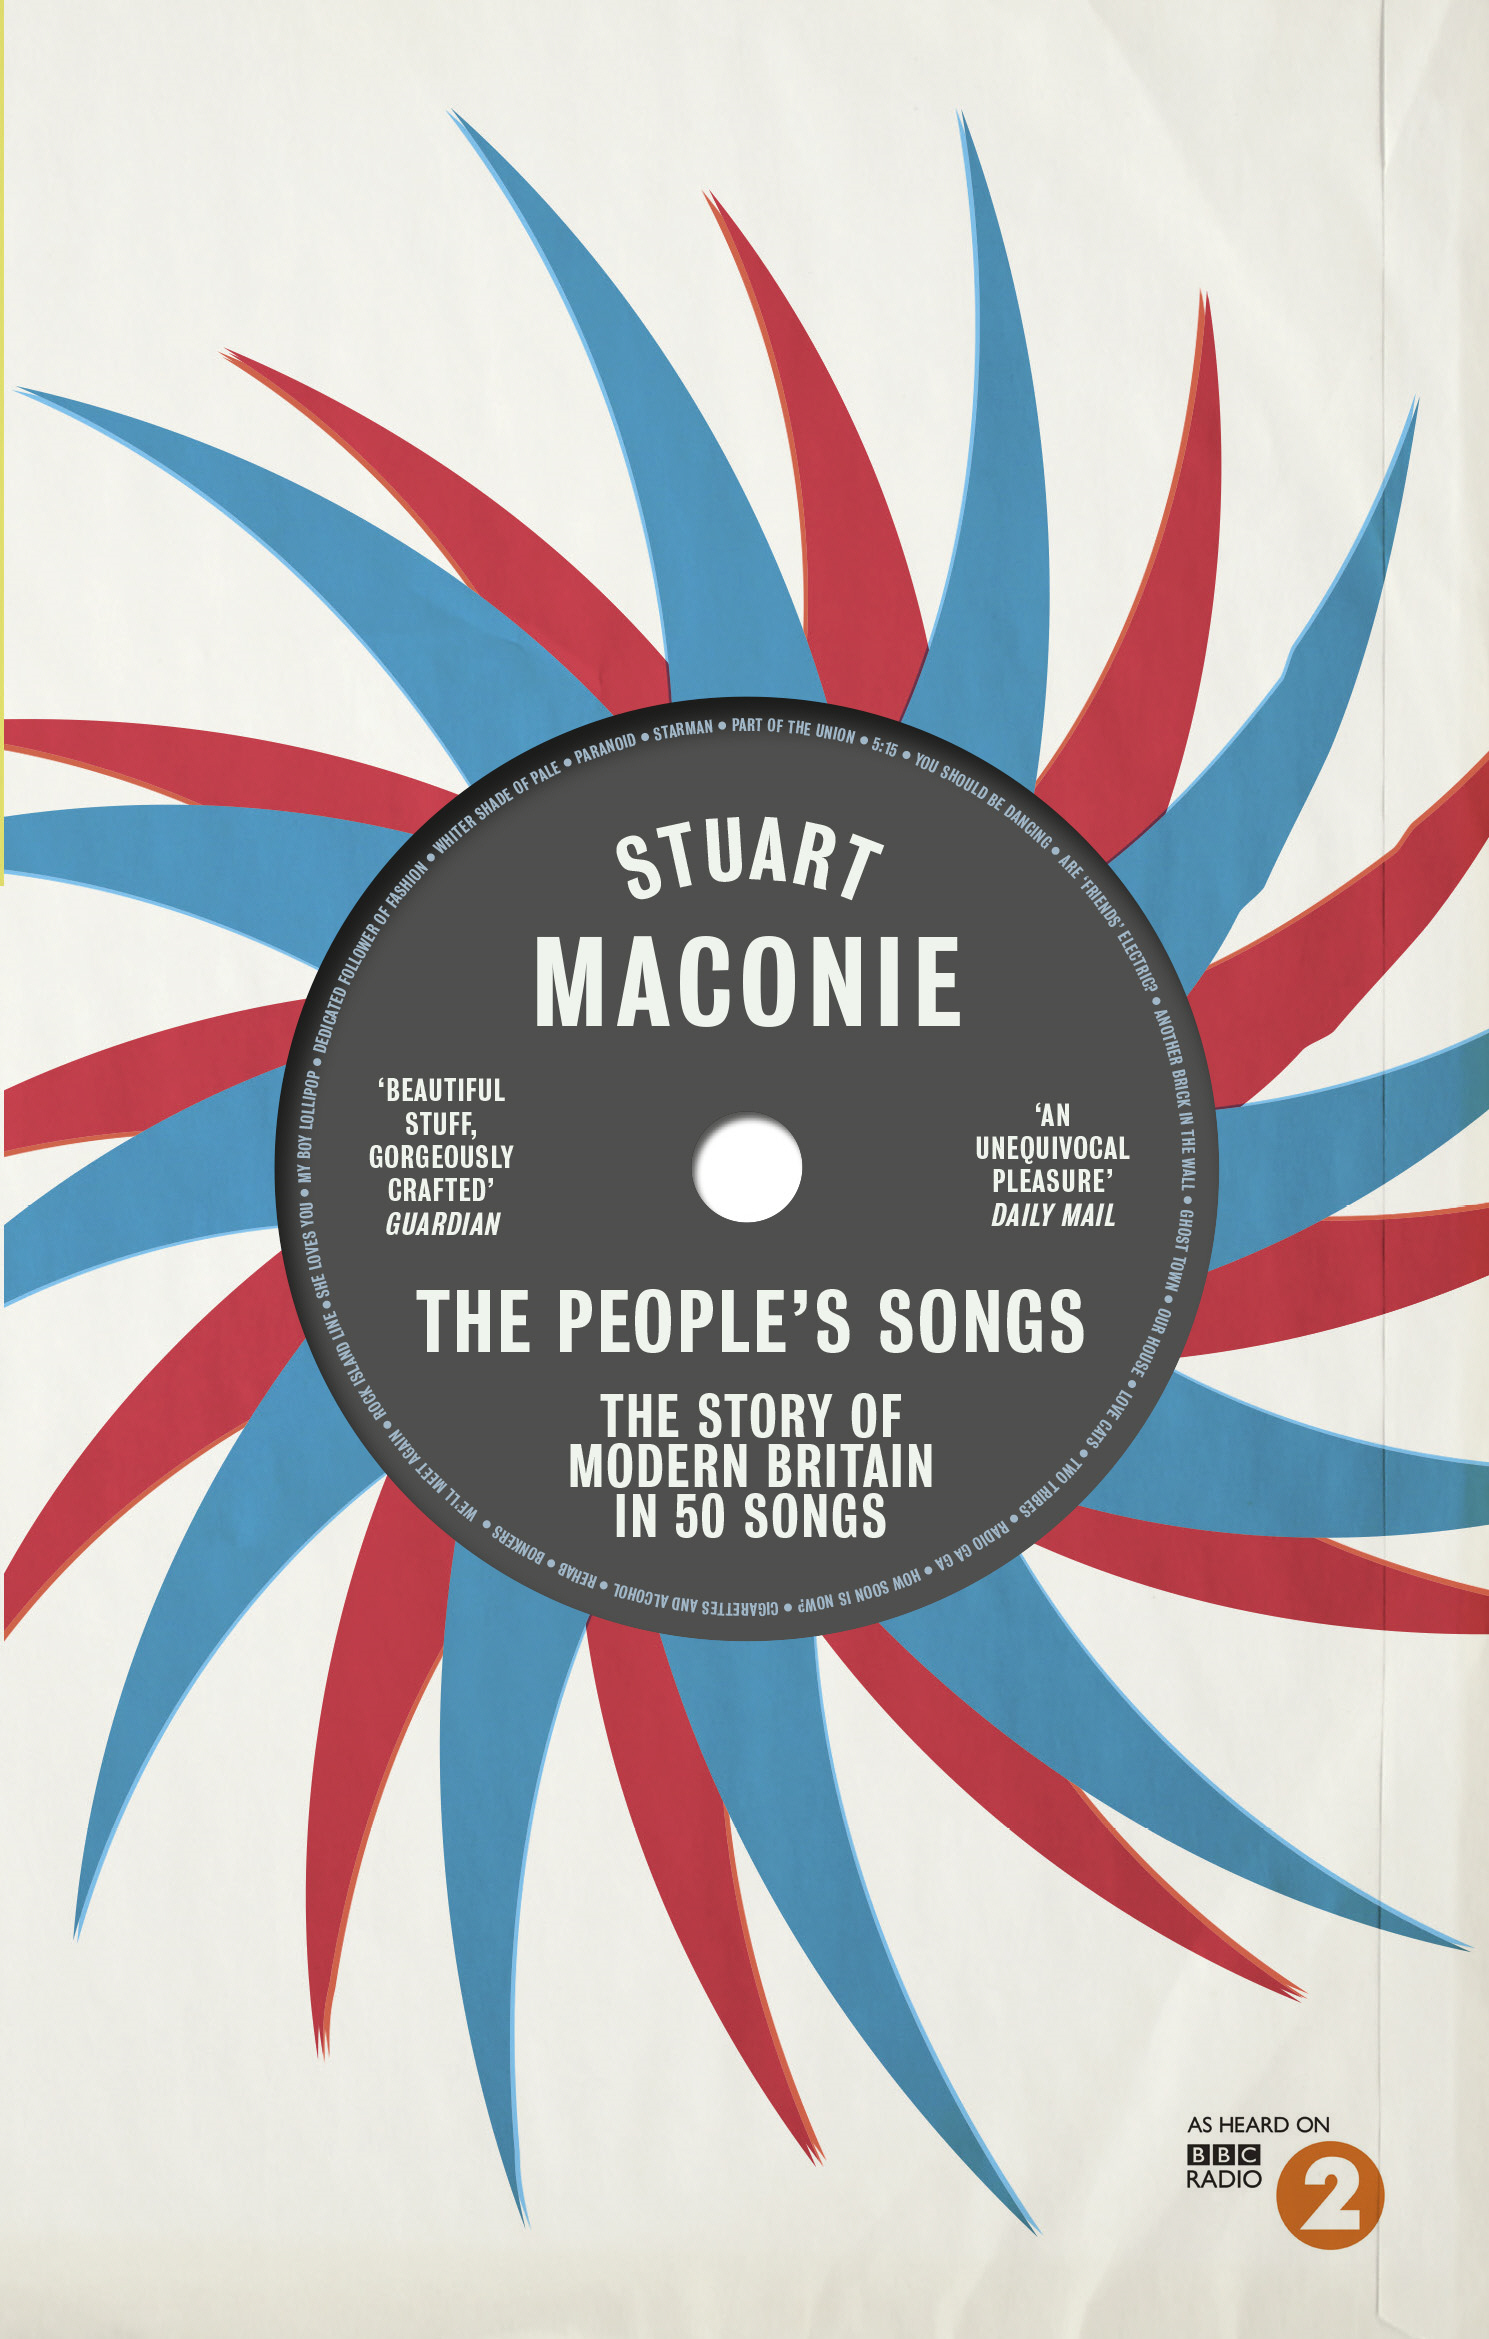 The People's Songs The Story of Modern Britain in 50 Records